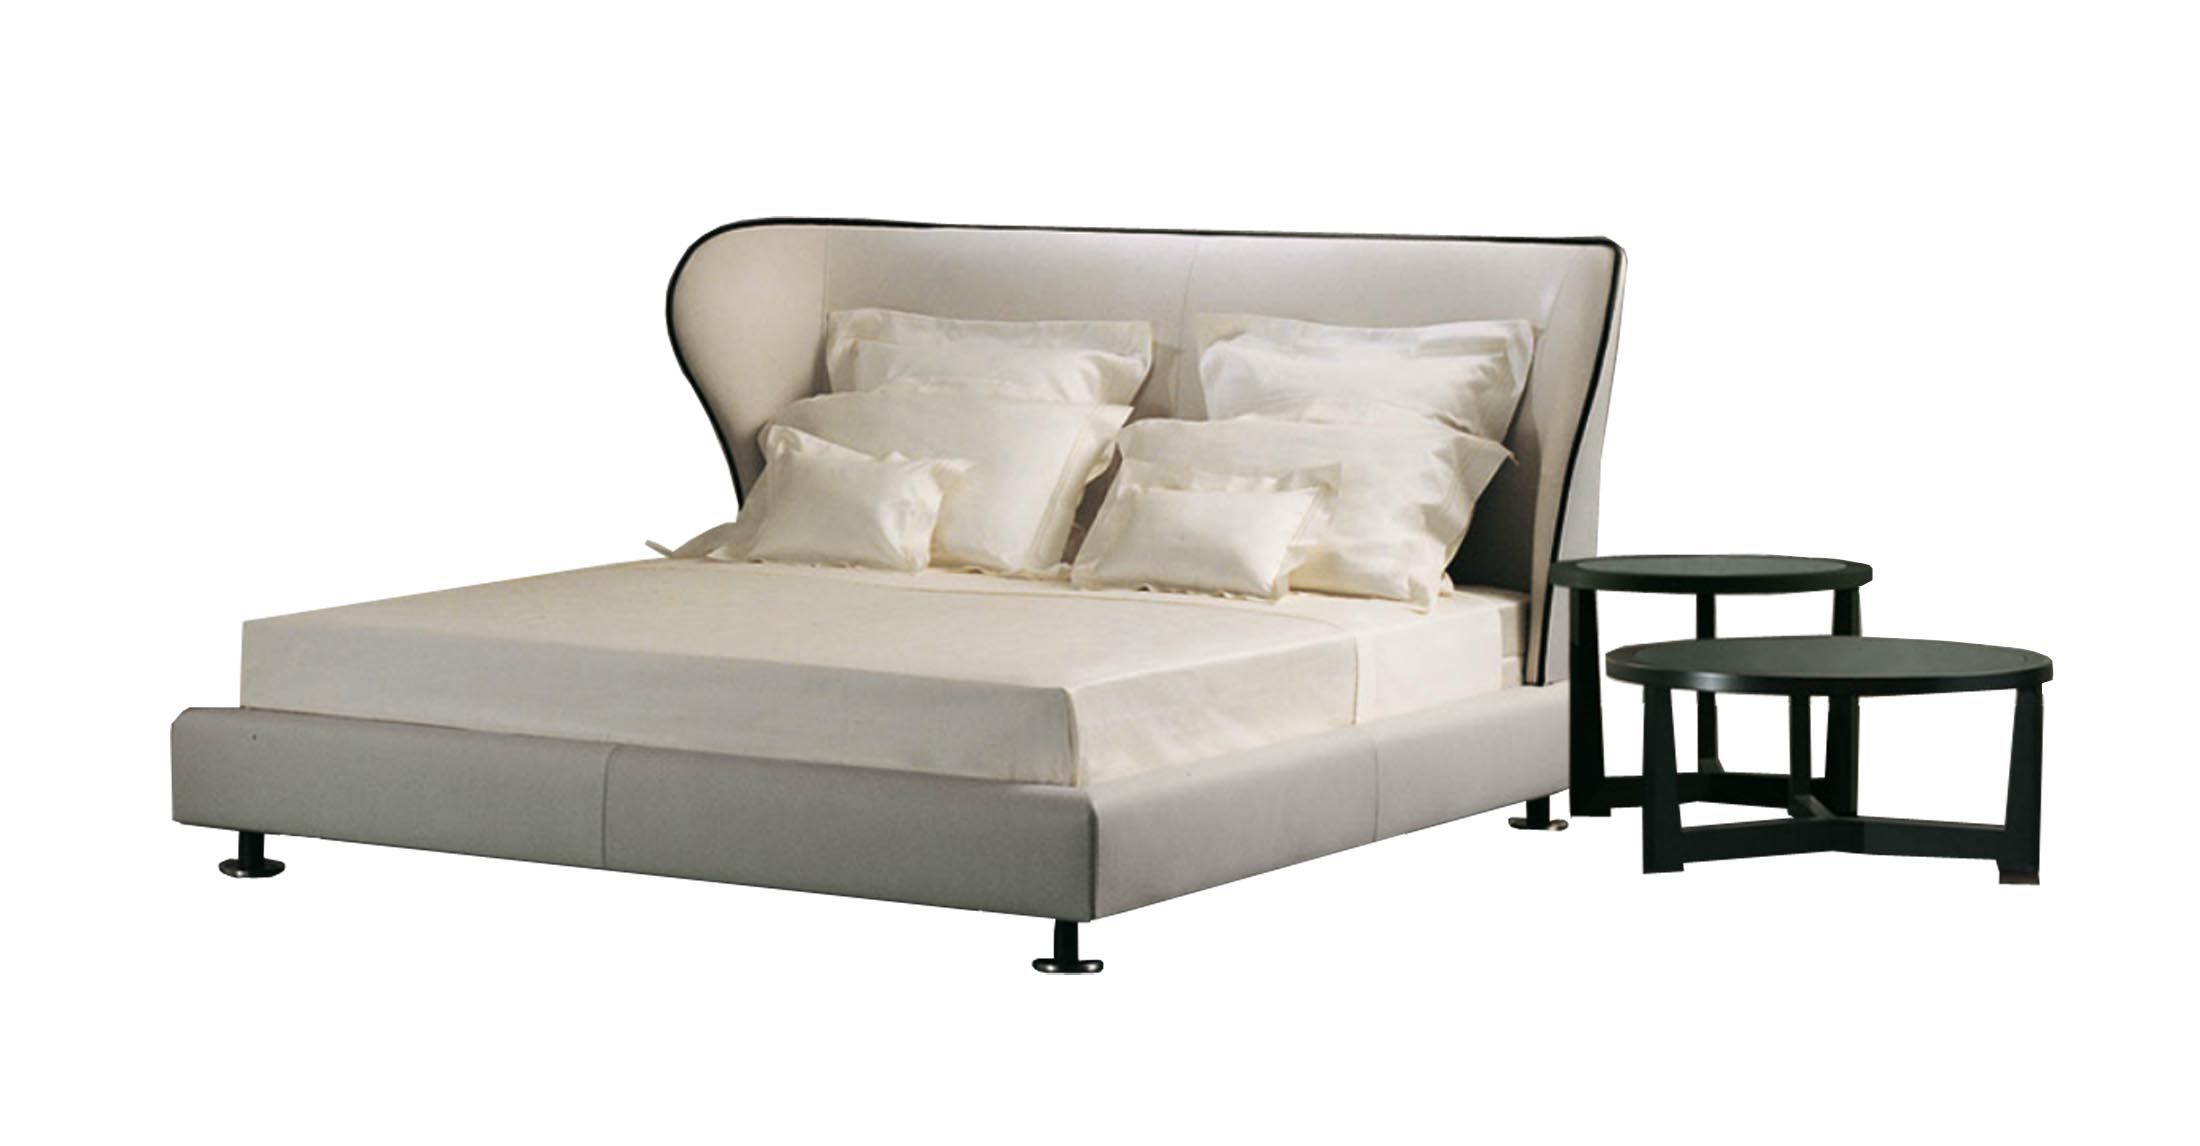 Rea Bed by Bed furniture, Furniture